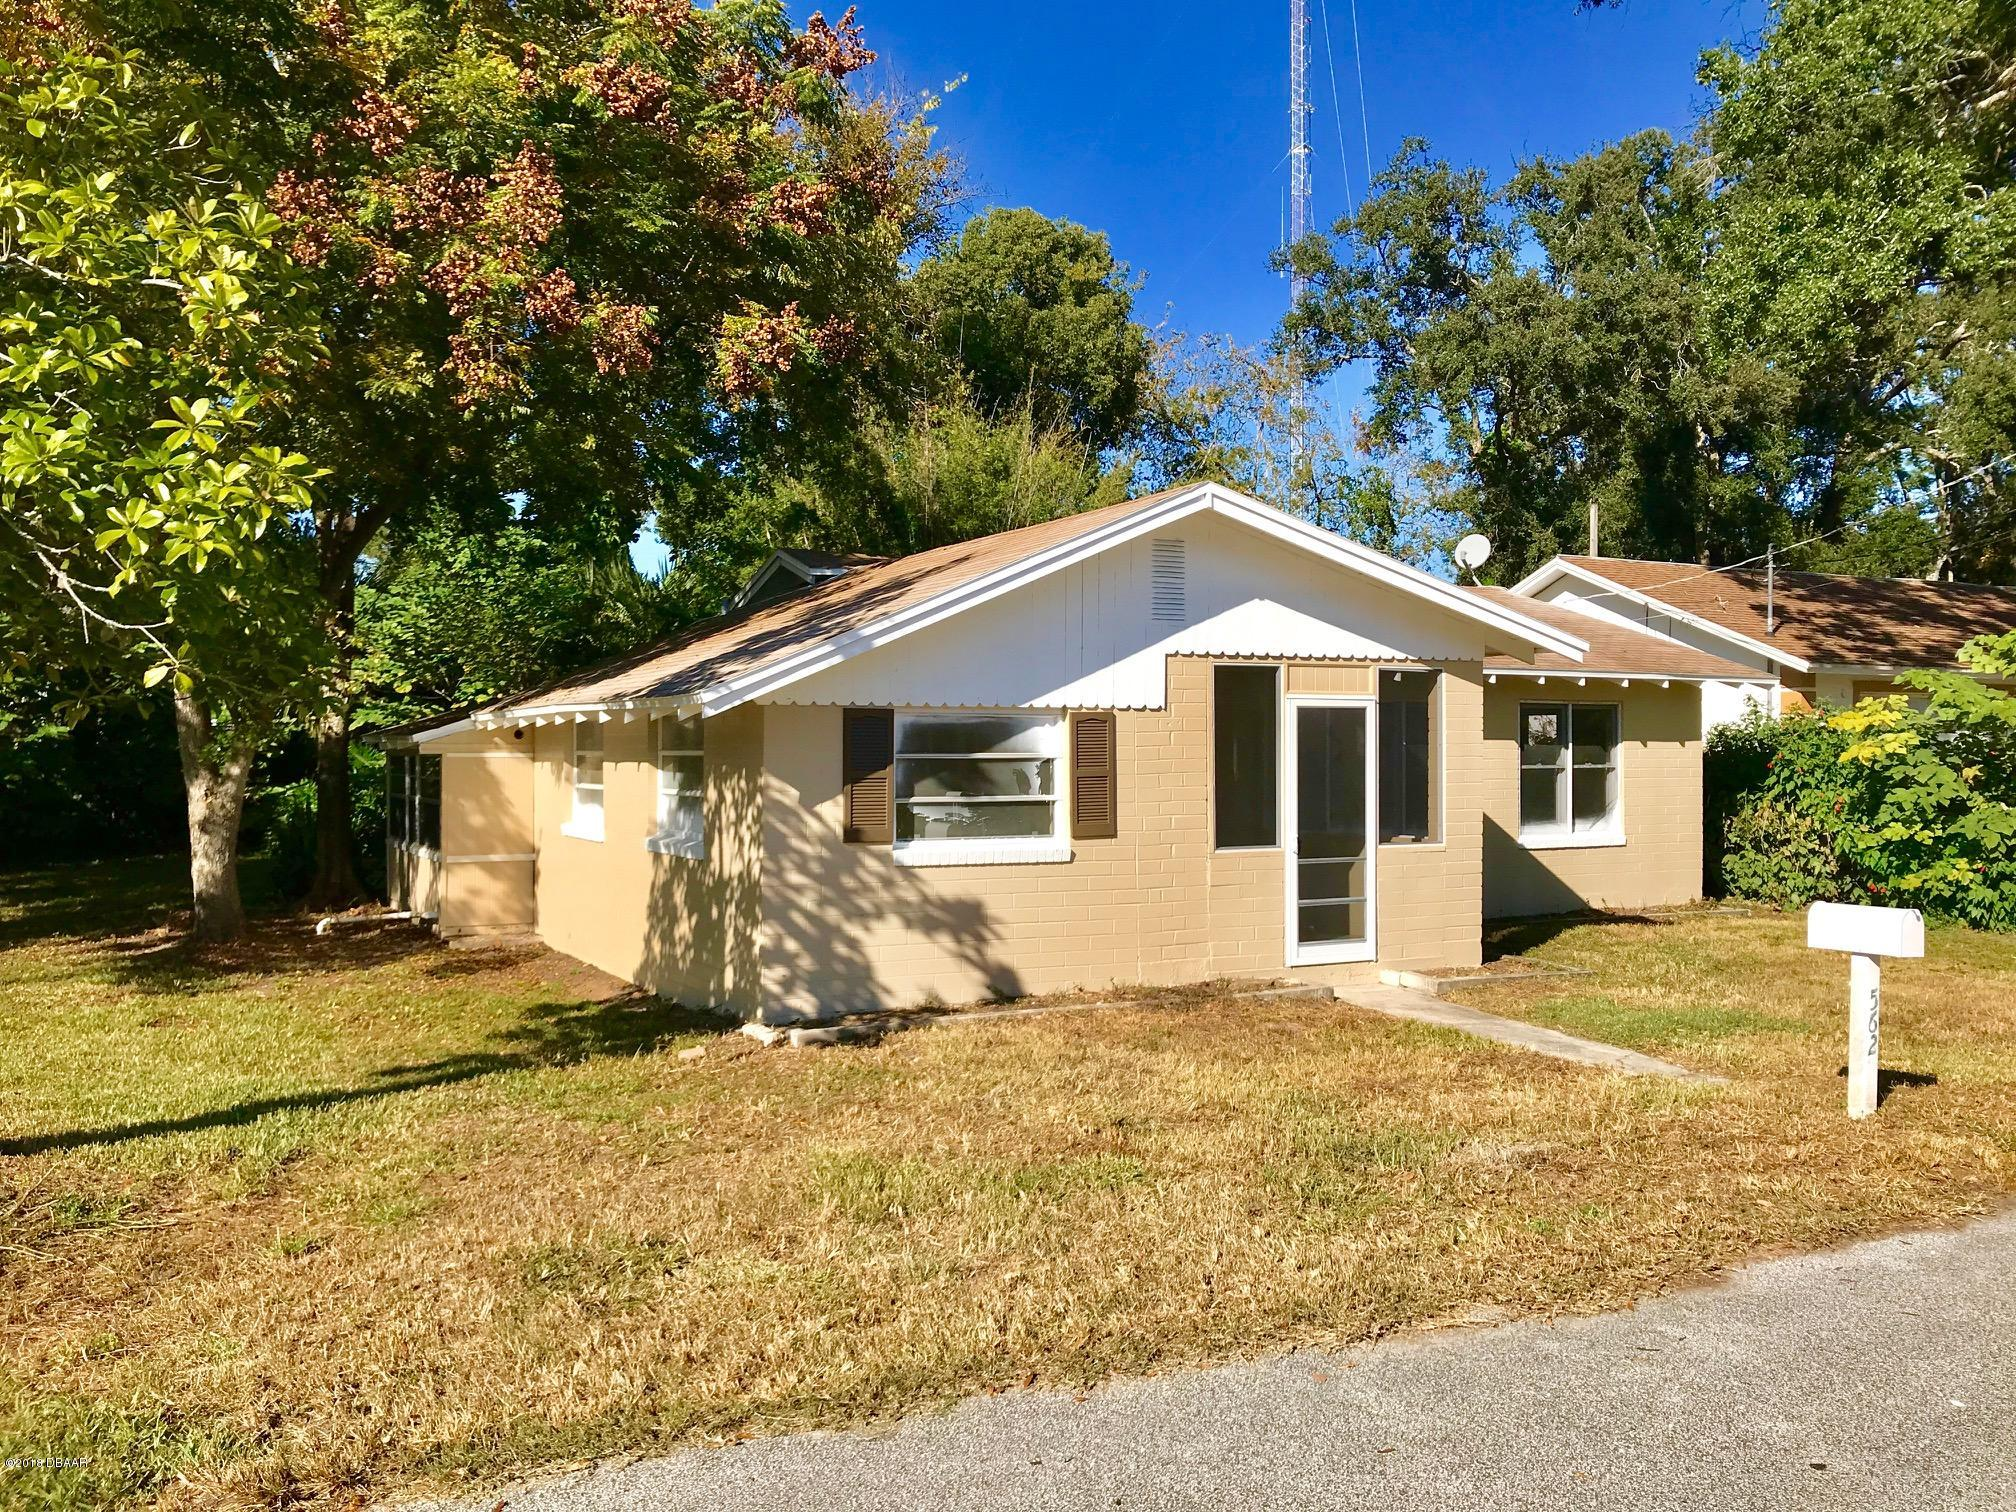 562 4th Street, Holly Hill, Florida